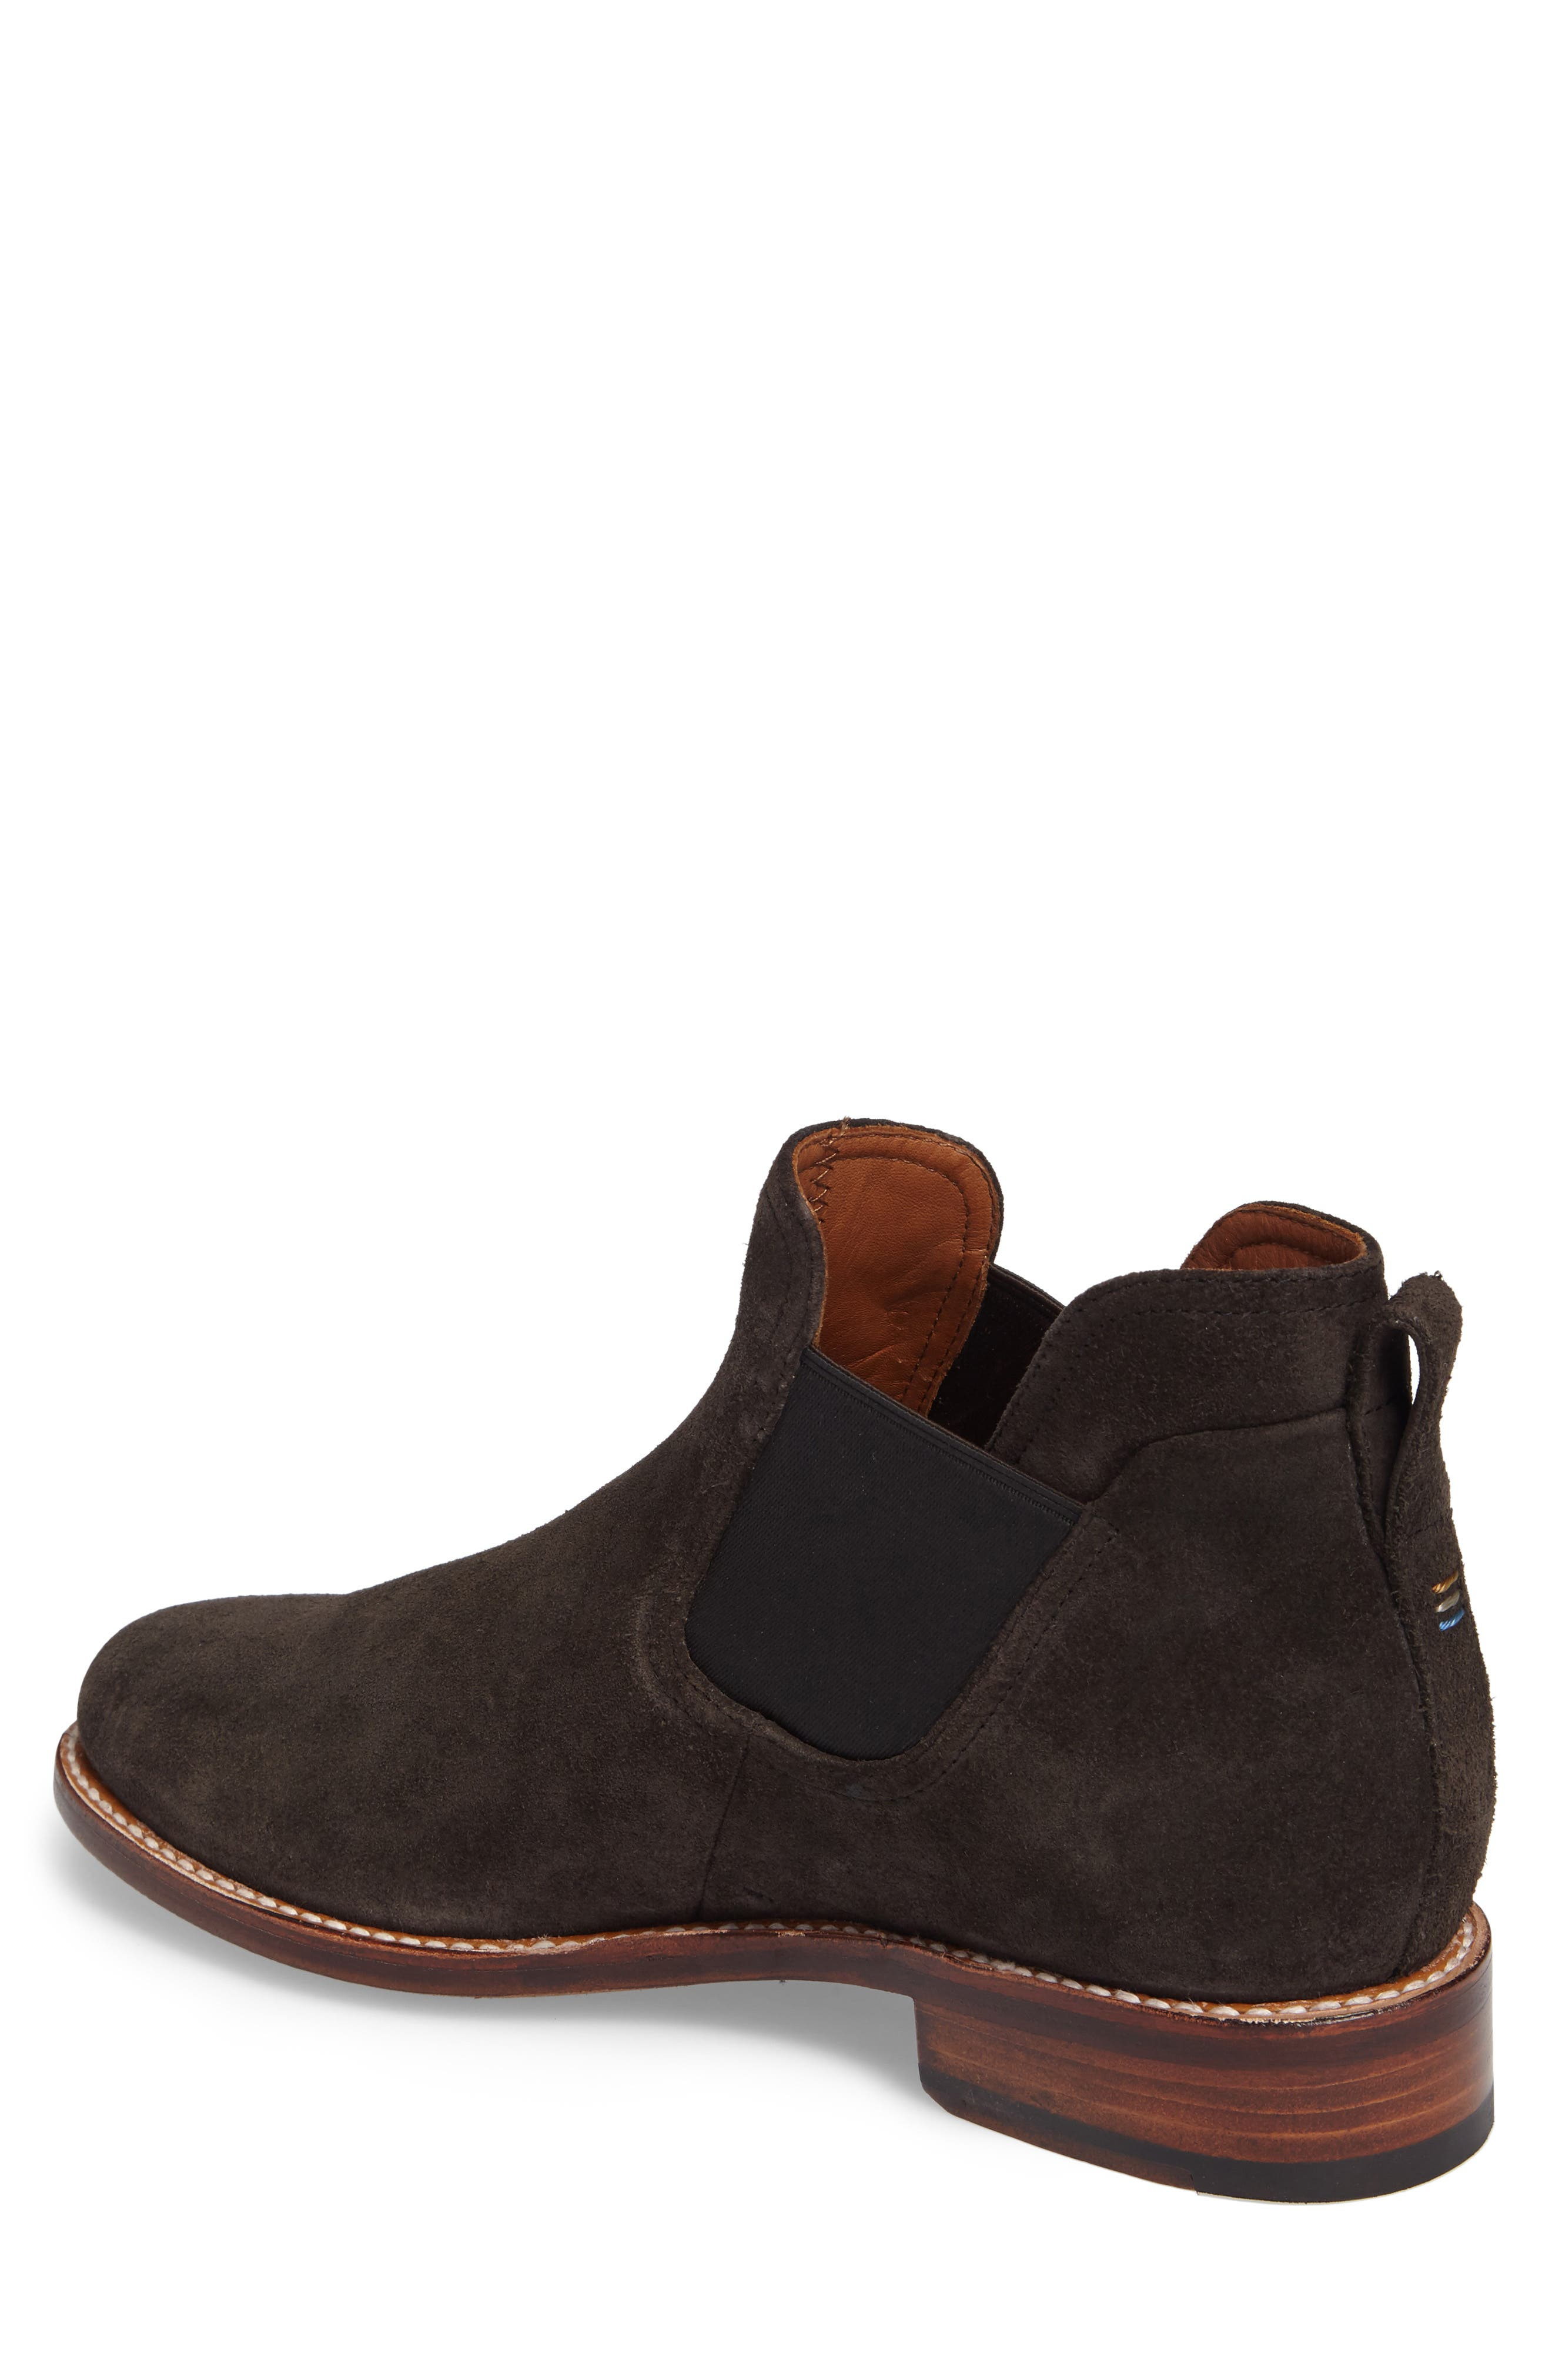 Rio Chelsea Boot,                             Alternate thumbnail 2, color,                             200